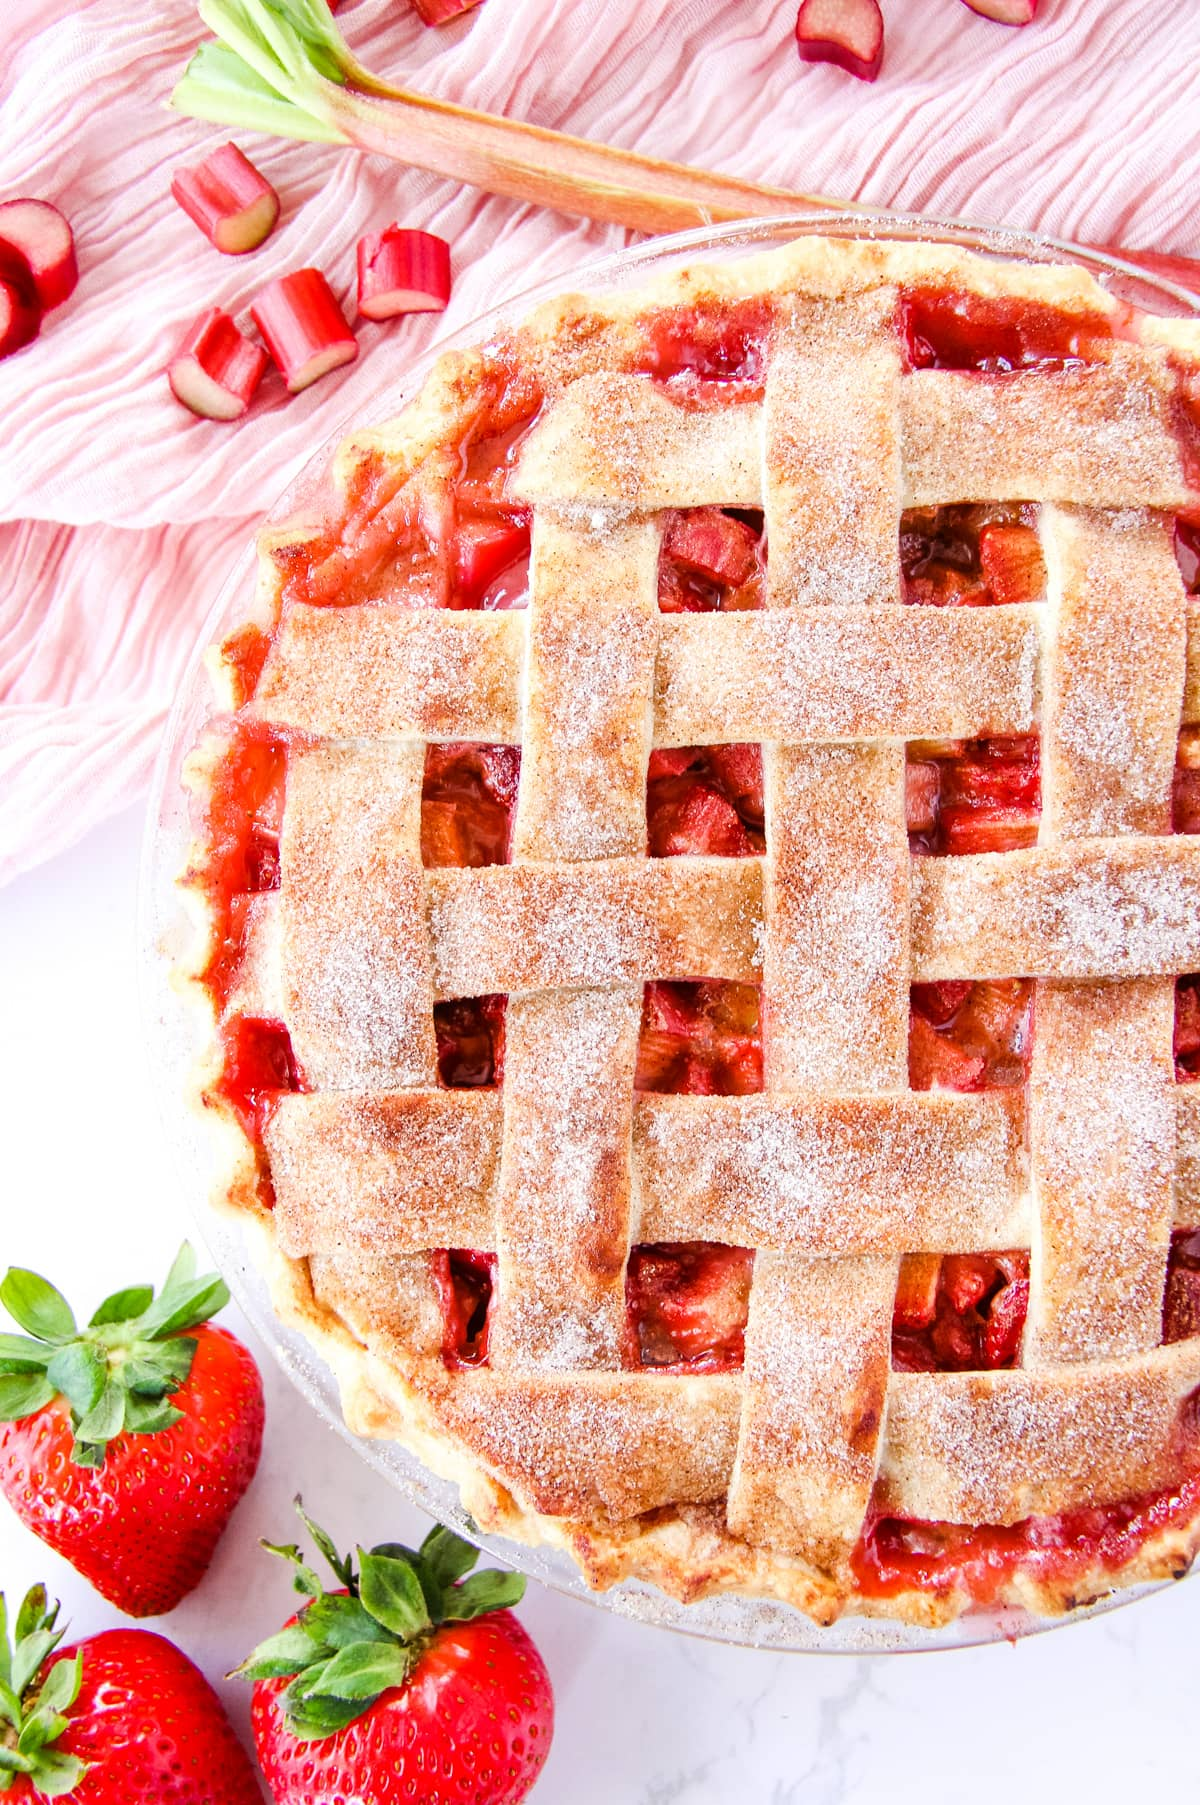 a top down view of half of a strawberry rhubarb pie with a lattice crust. in the background is a soft pink napkin, chopped rhubarb and strawberries